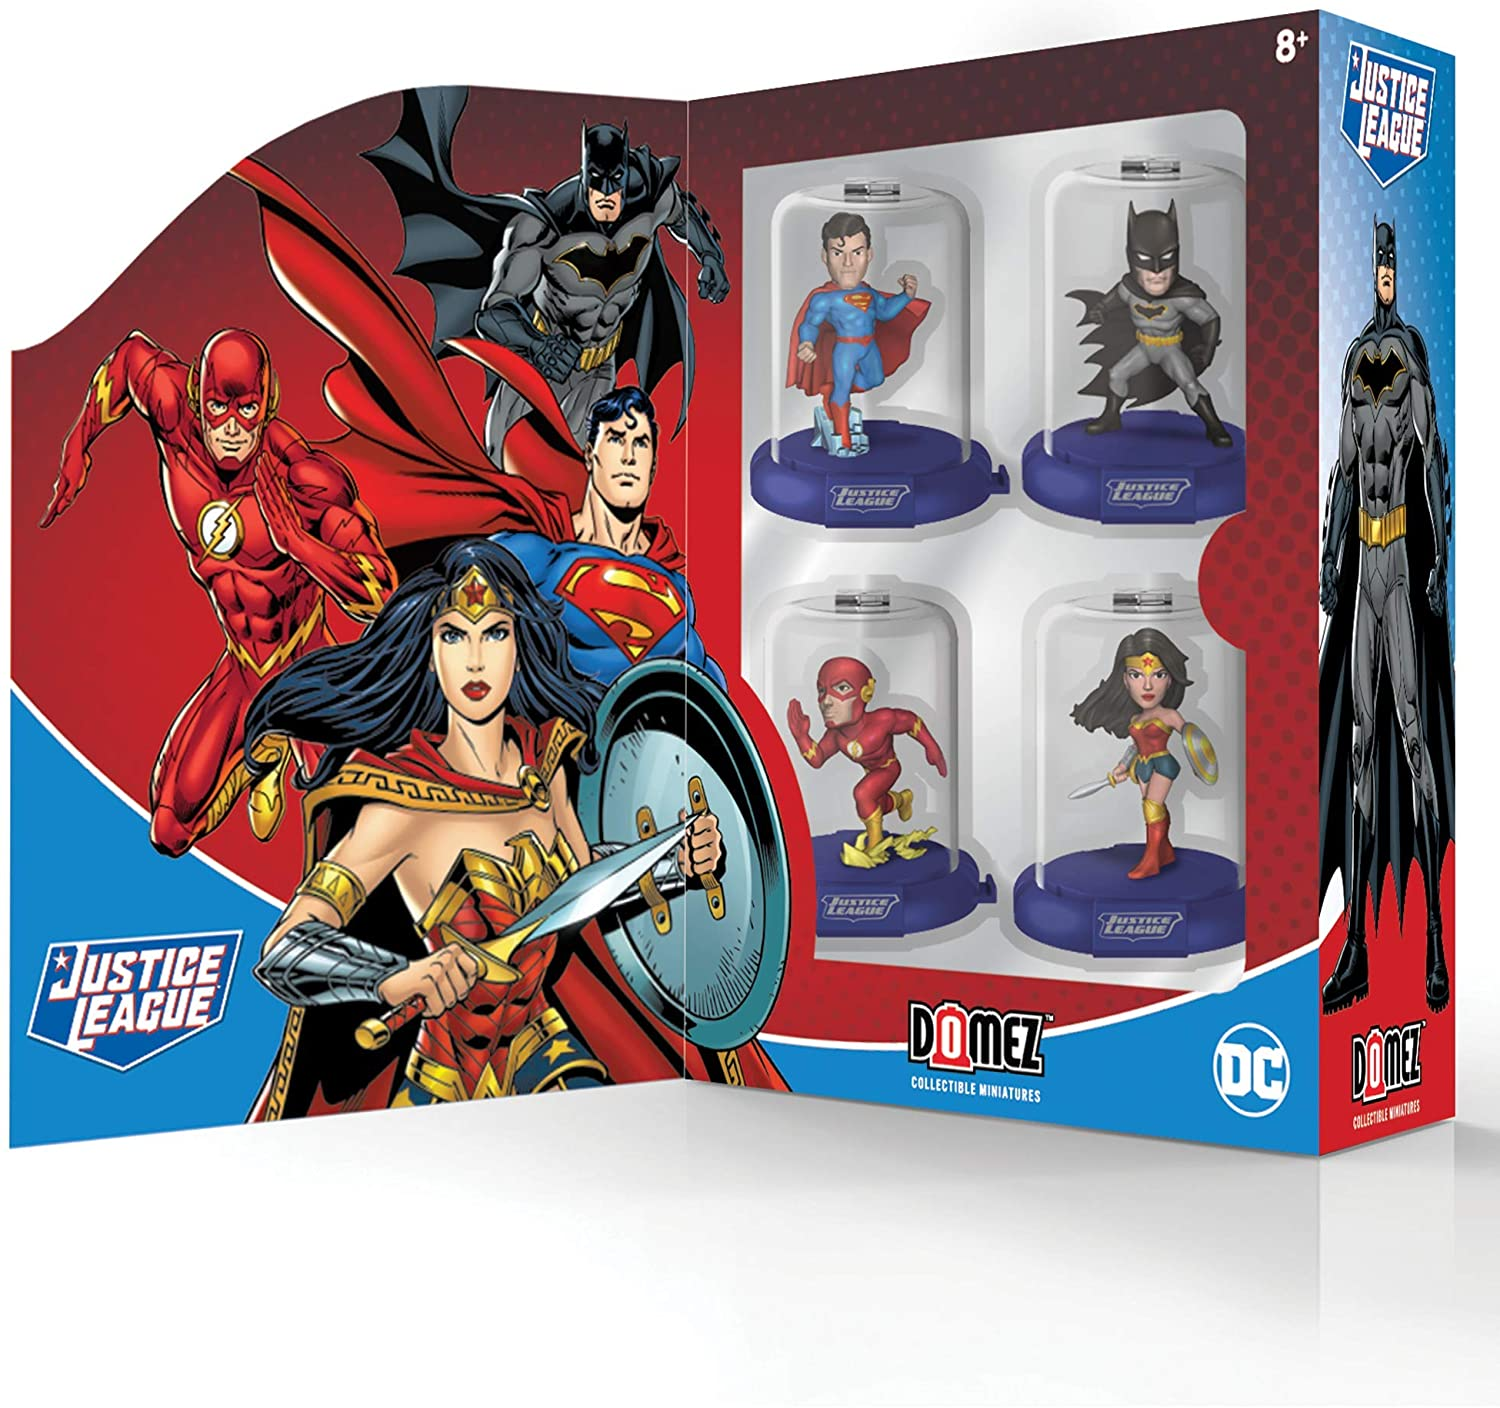 Justice League Domez Series 1 Collector's Box Set - Includes Batman, Superman, Wonder Woman & The Flash - Authentic & Highly Detailed Collectible Characters - Connect, Collect, Display